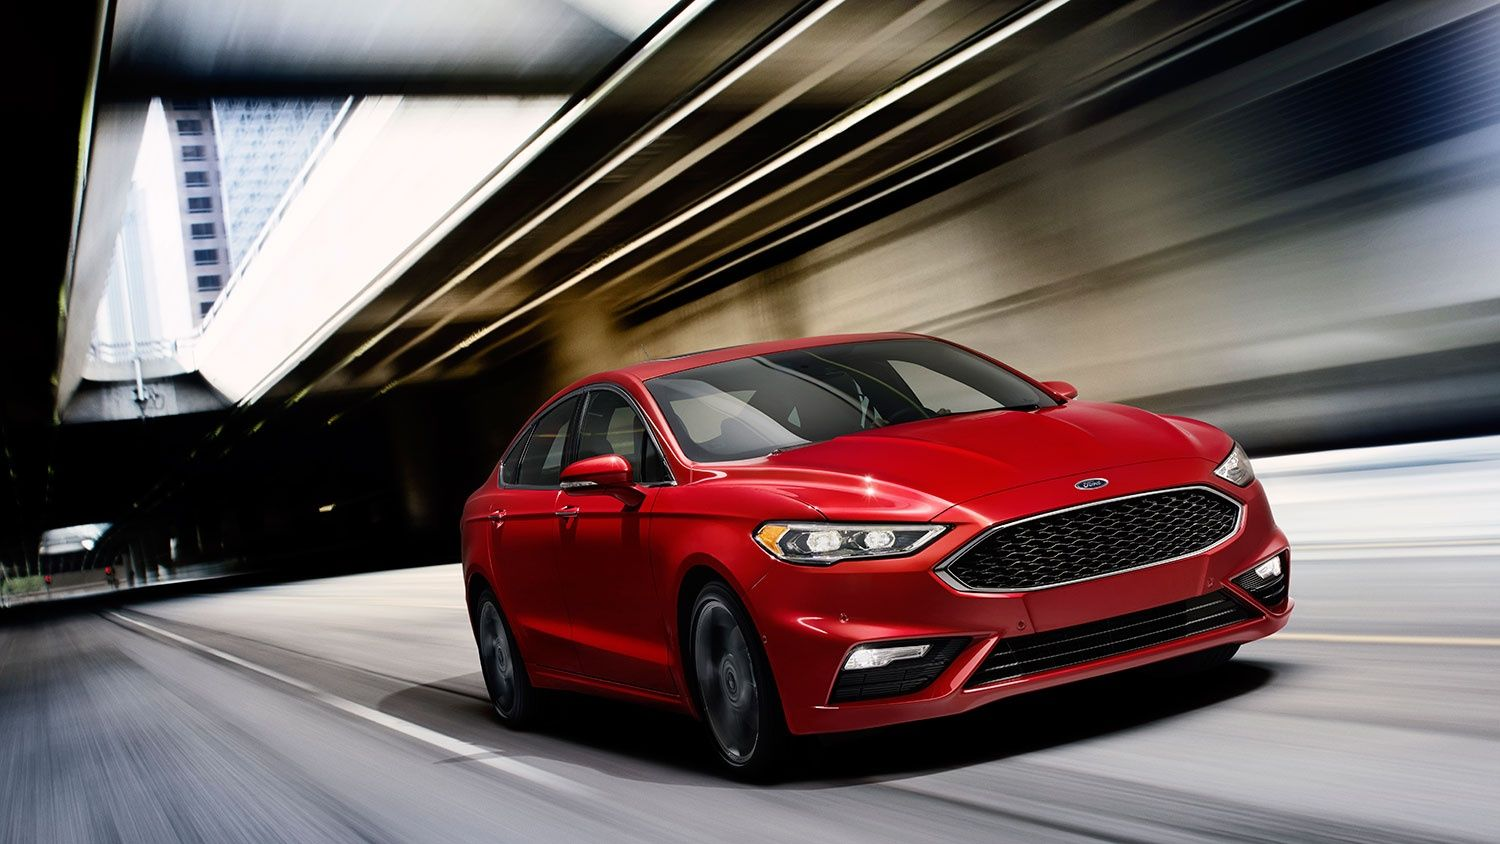 2017 Ford Fusion Photos, details, specs Digital Trends